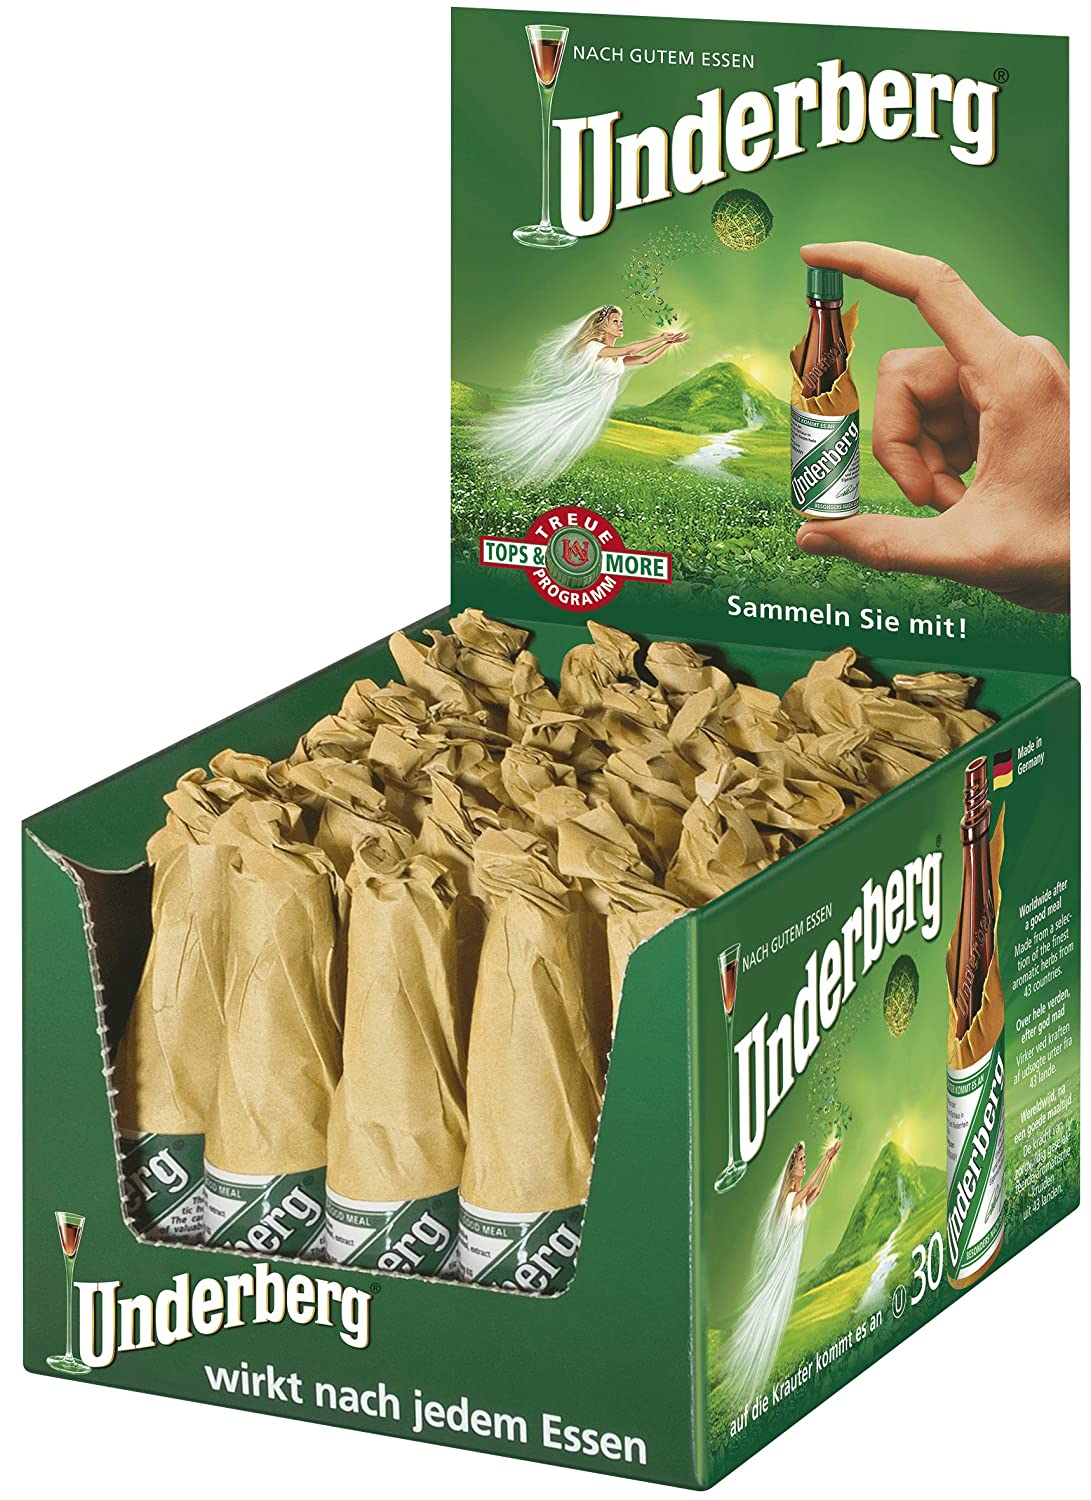 Underberg The Rheinberg Herbal Digestive Licor 30 Bottles Pack - 90 Unidades